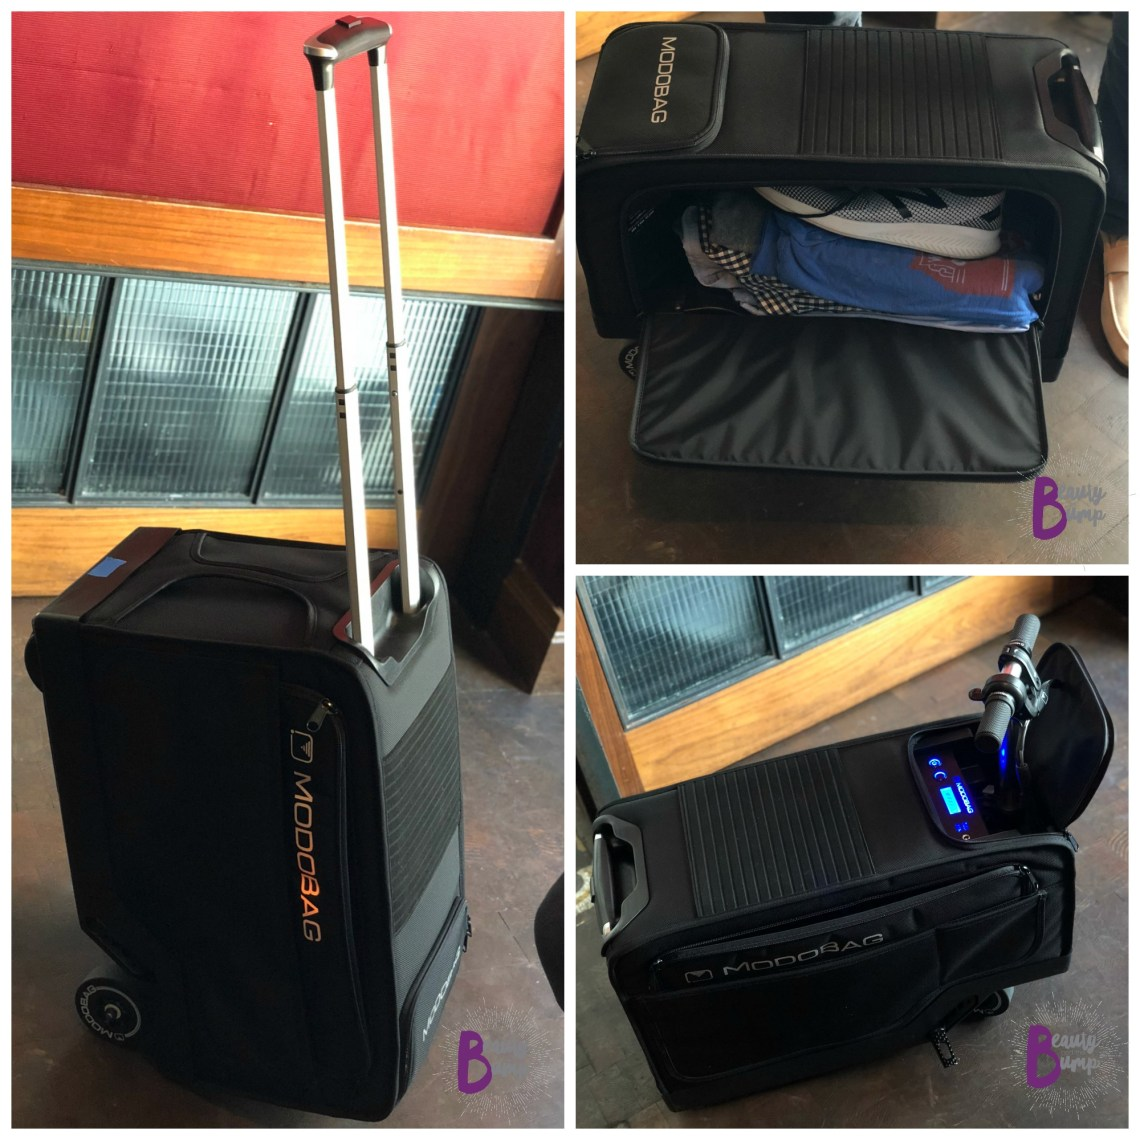 Zip through the airport on the Modobag ride-on suitcase.